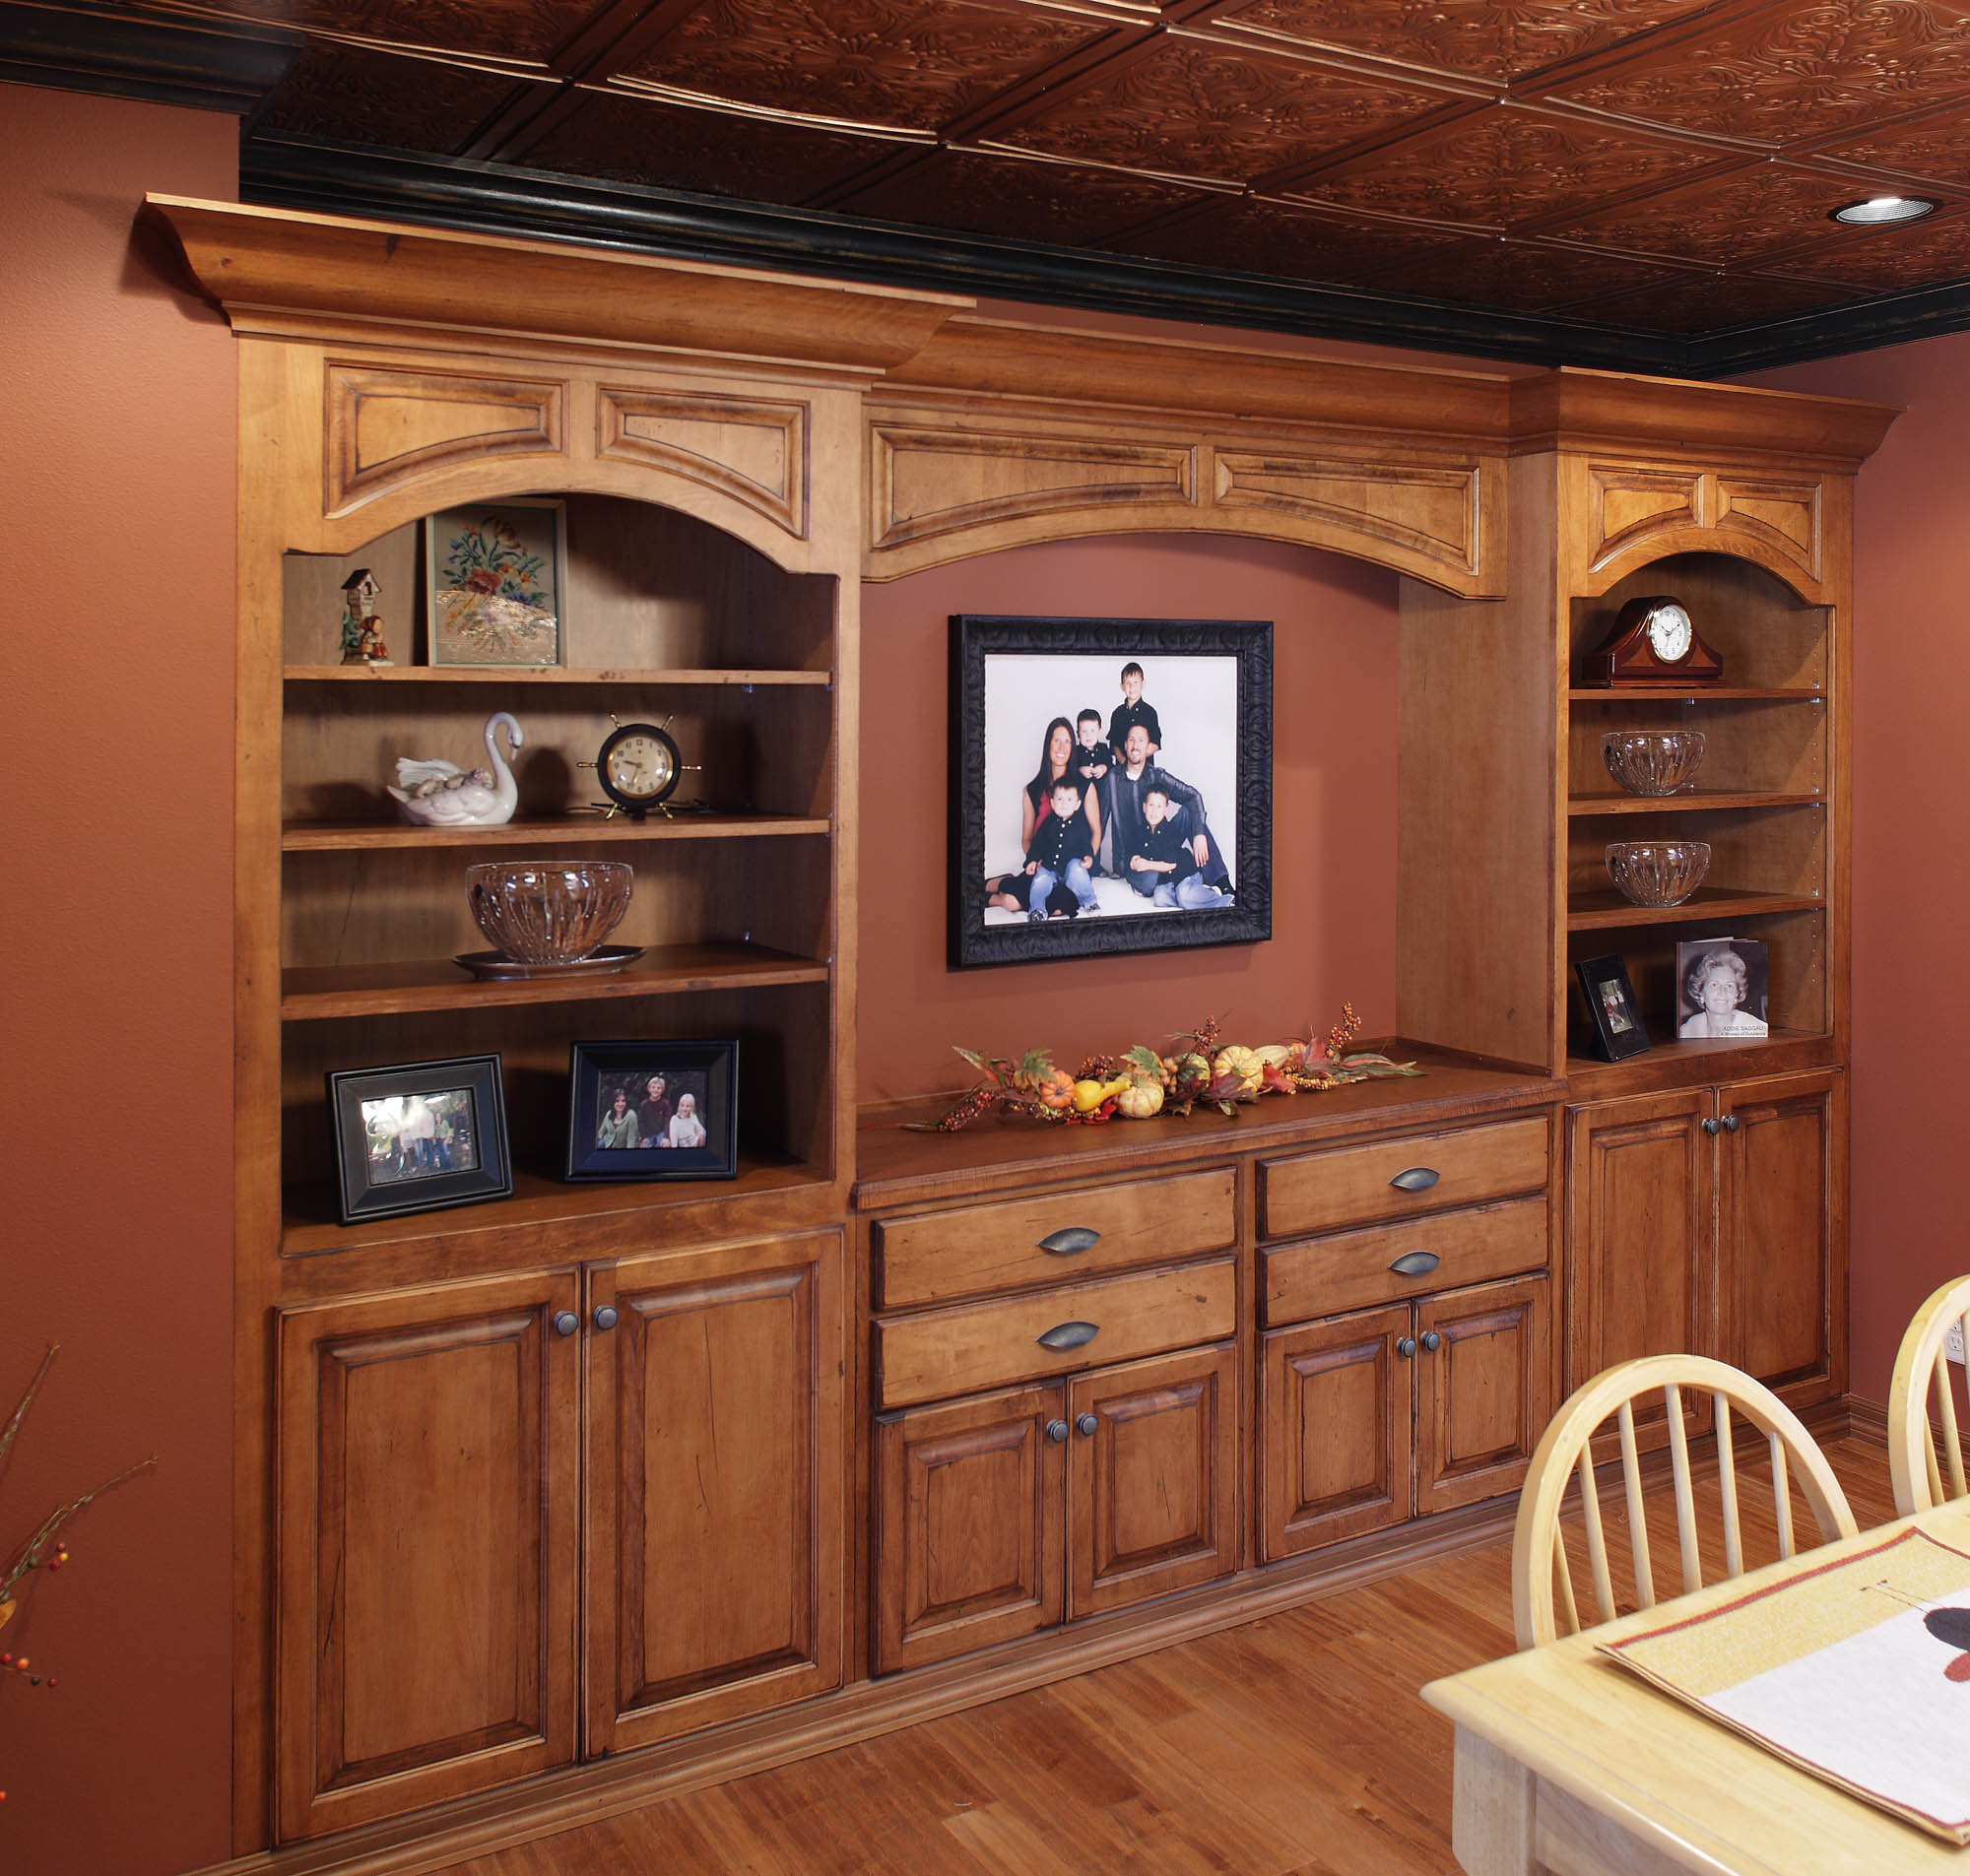 Renewing Kitchen Cabinets: View The New Cabinets In This Refaced Kitchen